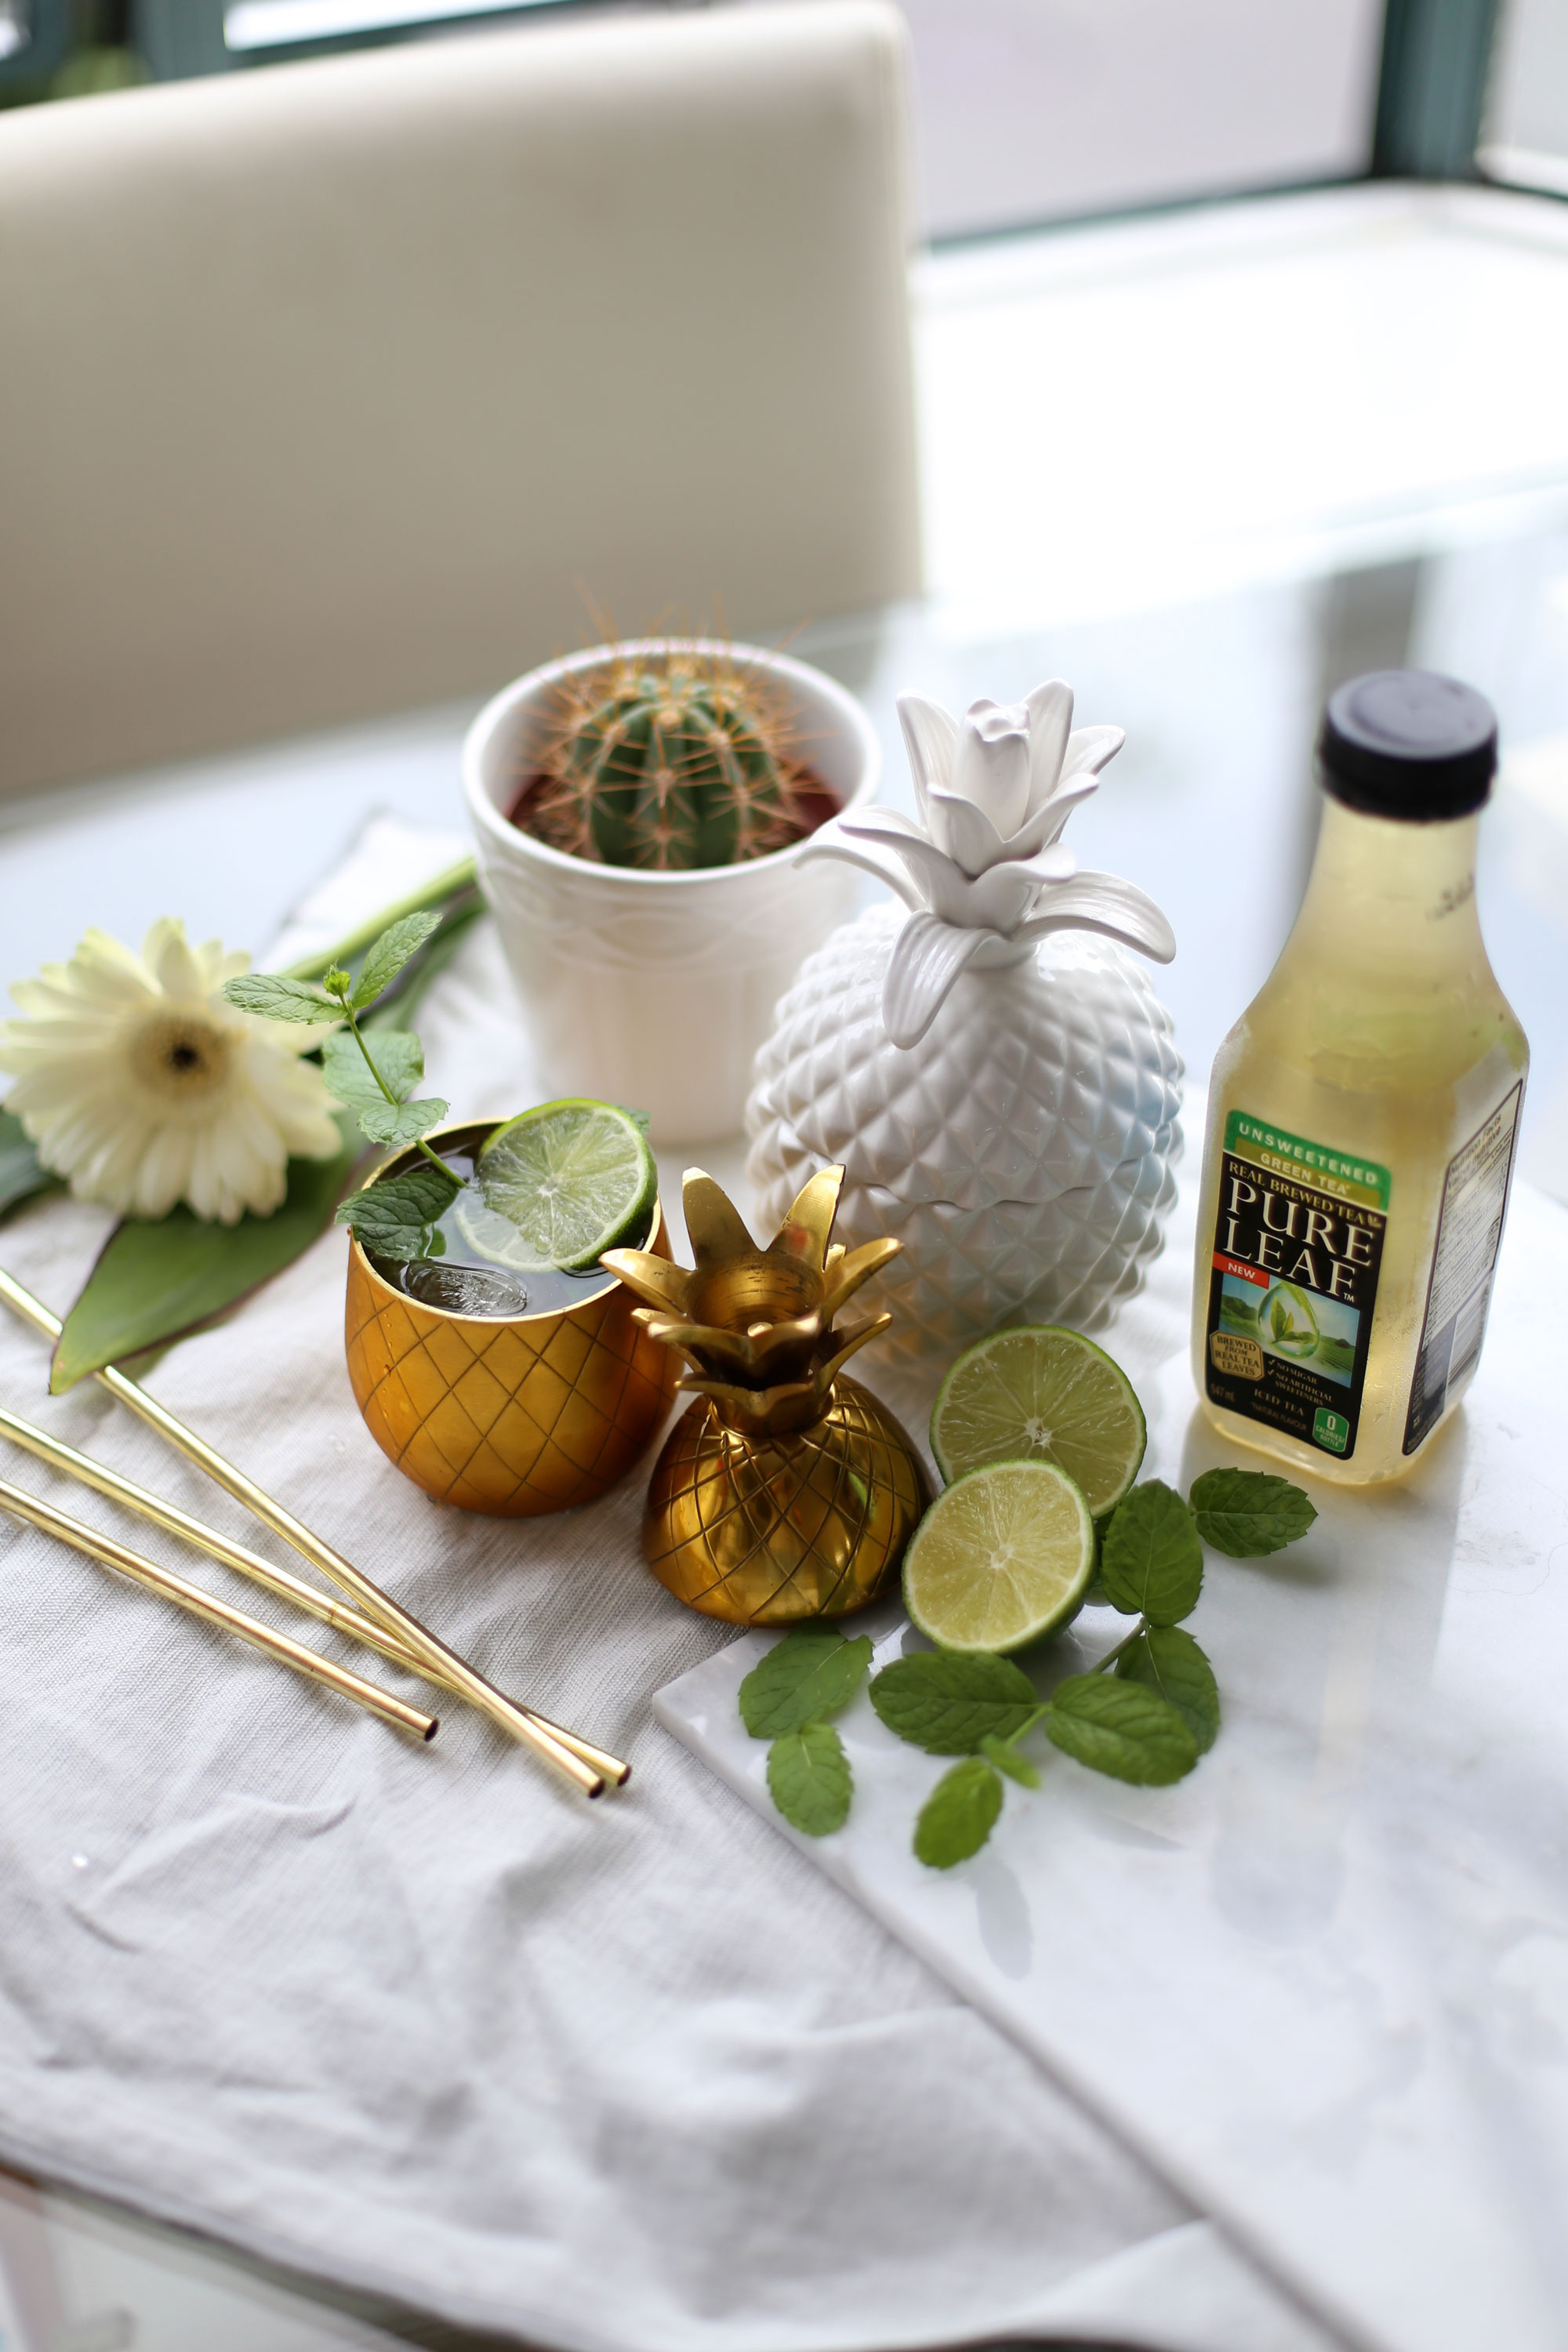 Mojito iced tea cocktail with Pure Leaf